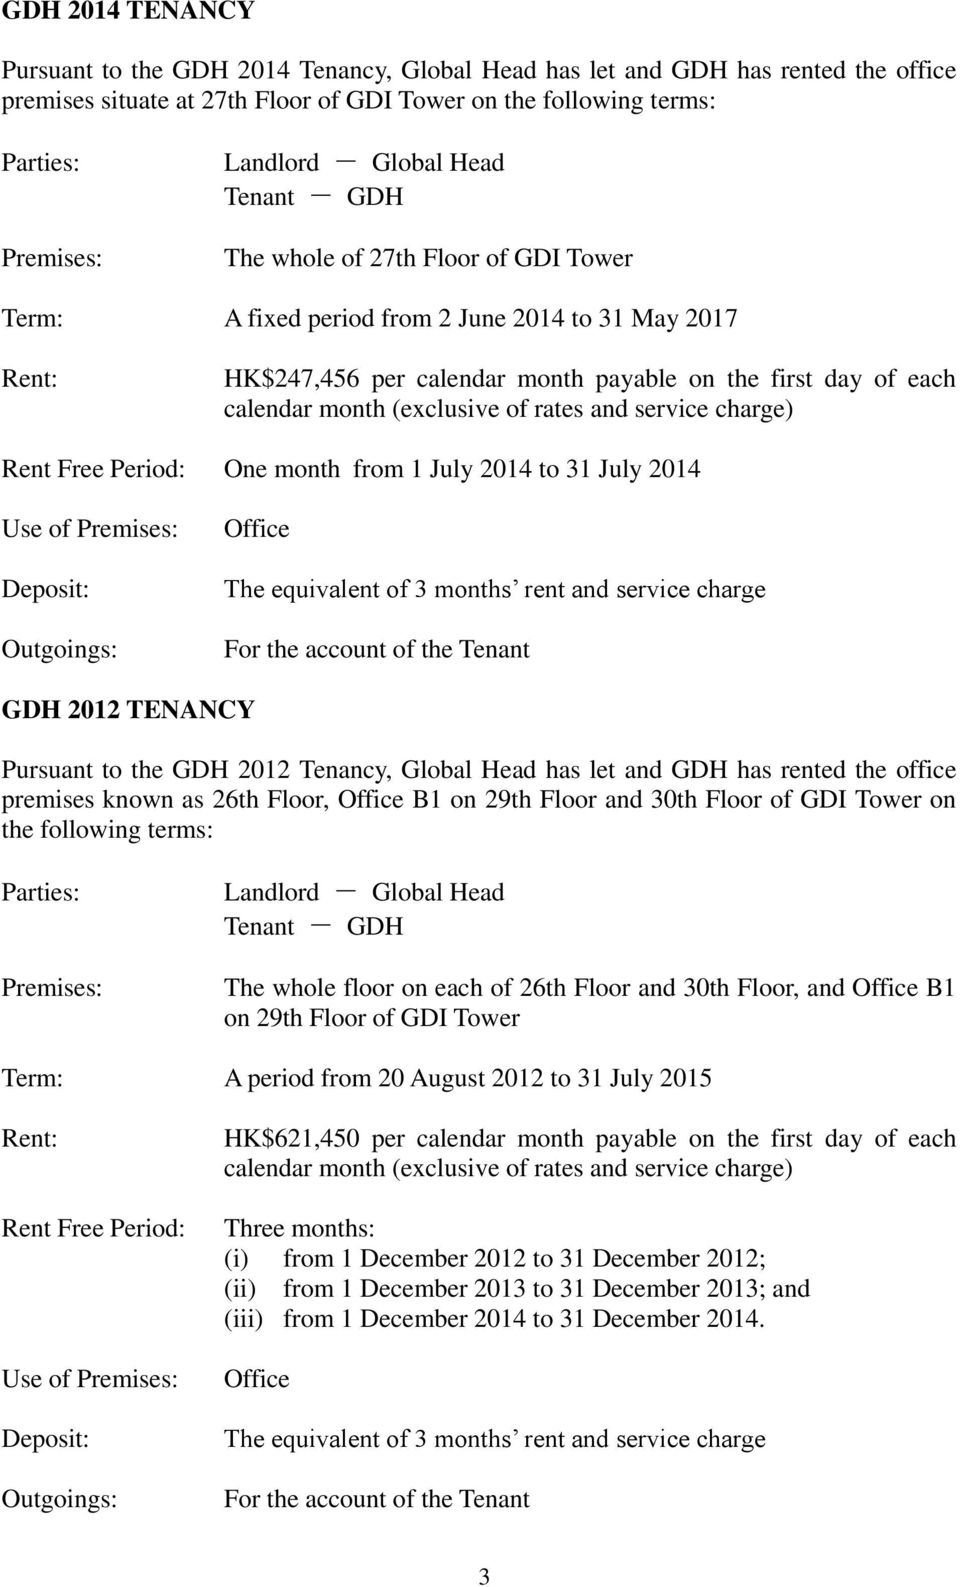 2014 to 31 July 2014 GDH 2012 TENANCY Pursuant to the GDH 2012 Tenancy, Global Head has let and GDH has rented the office premises known as 26th Floor, B1 on 29th Floor and 30th Floor of GDI Tower on